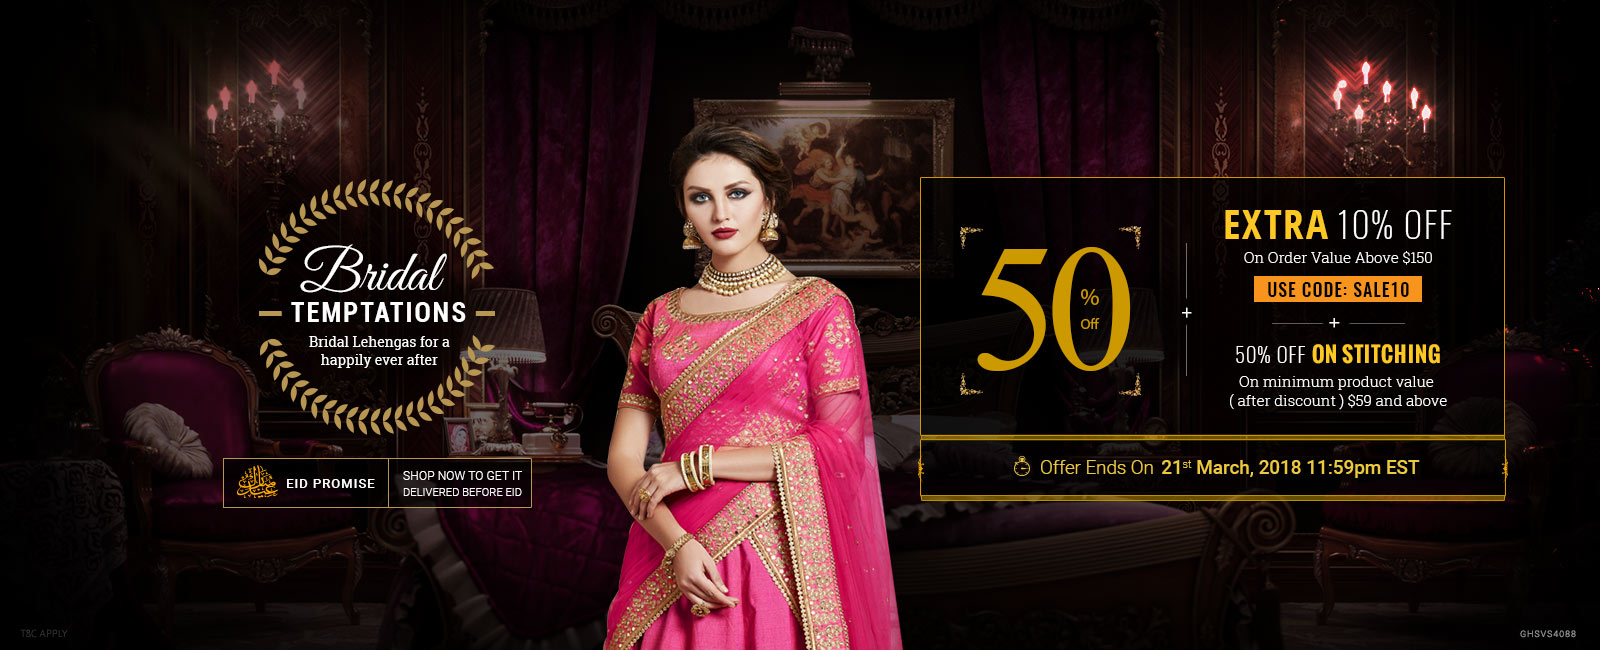 50% Off + Extra 10% Off + 50% Off on Stitching